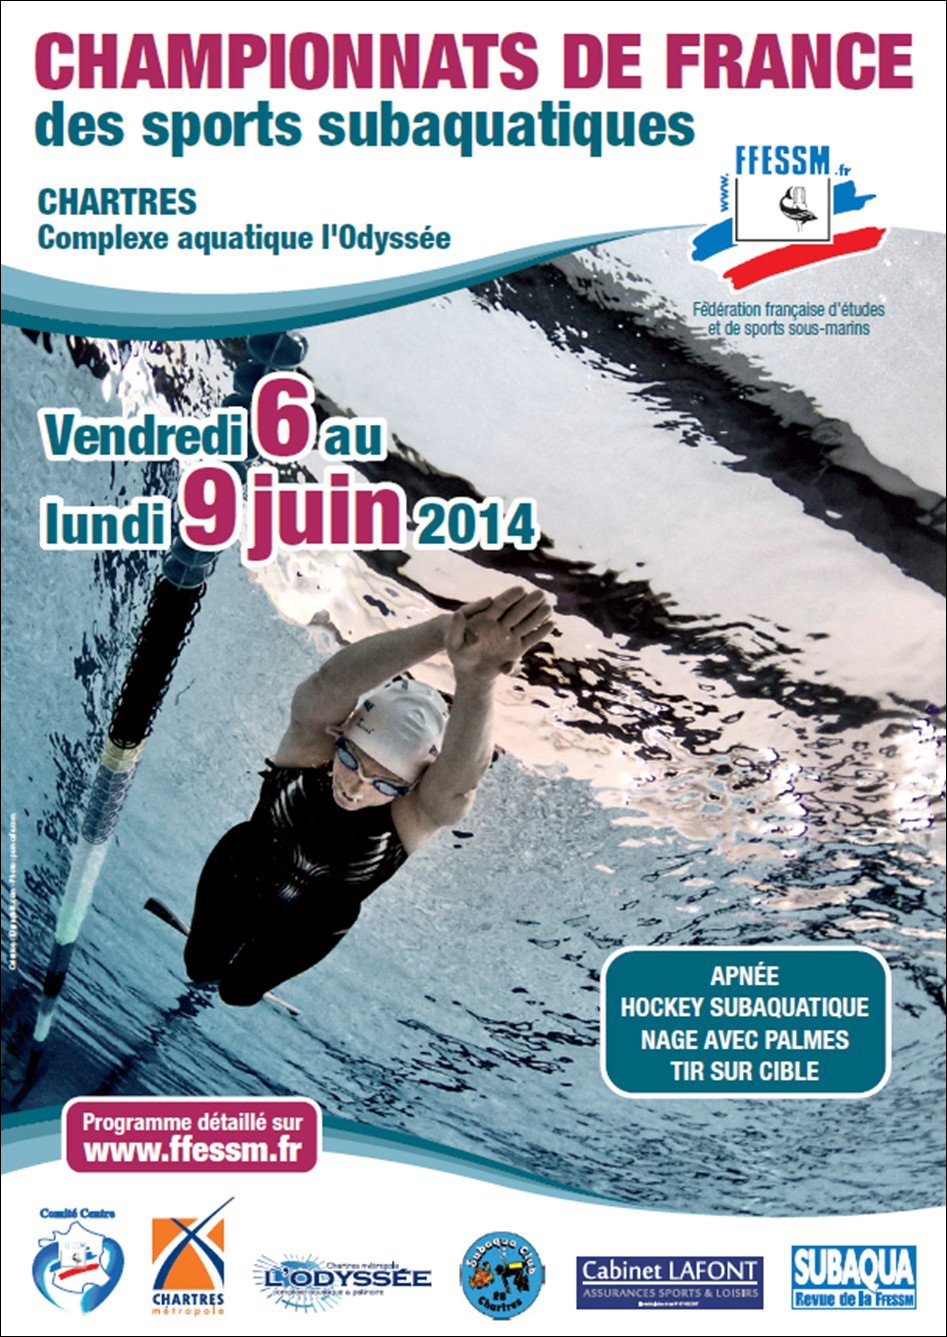 image championnats de france de sports subaquatiques